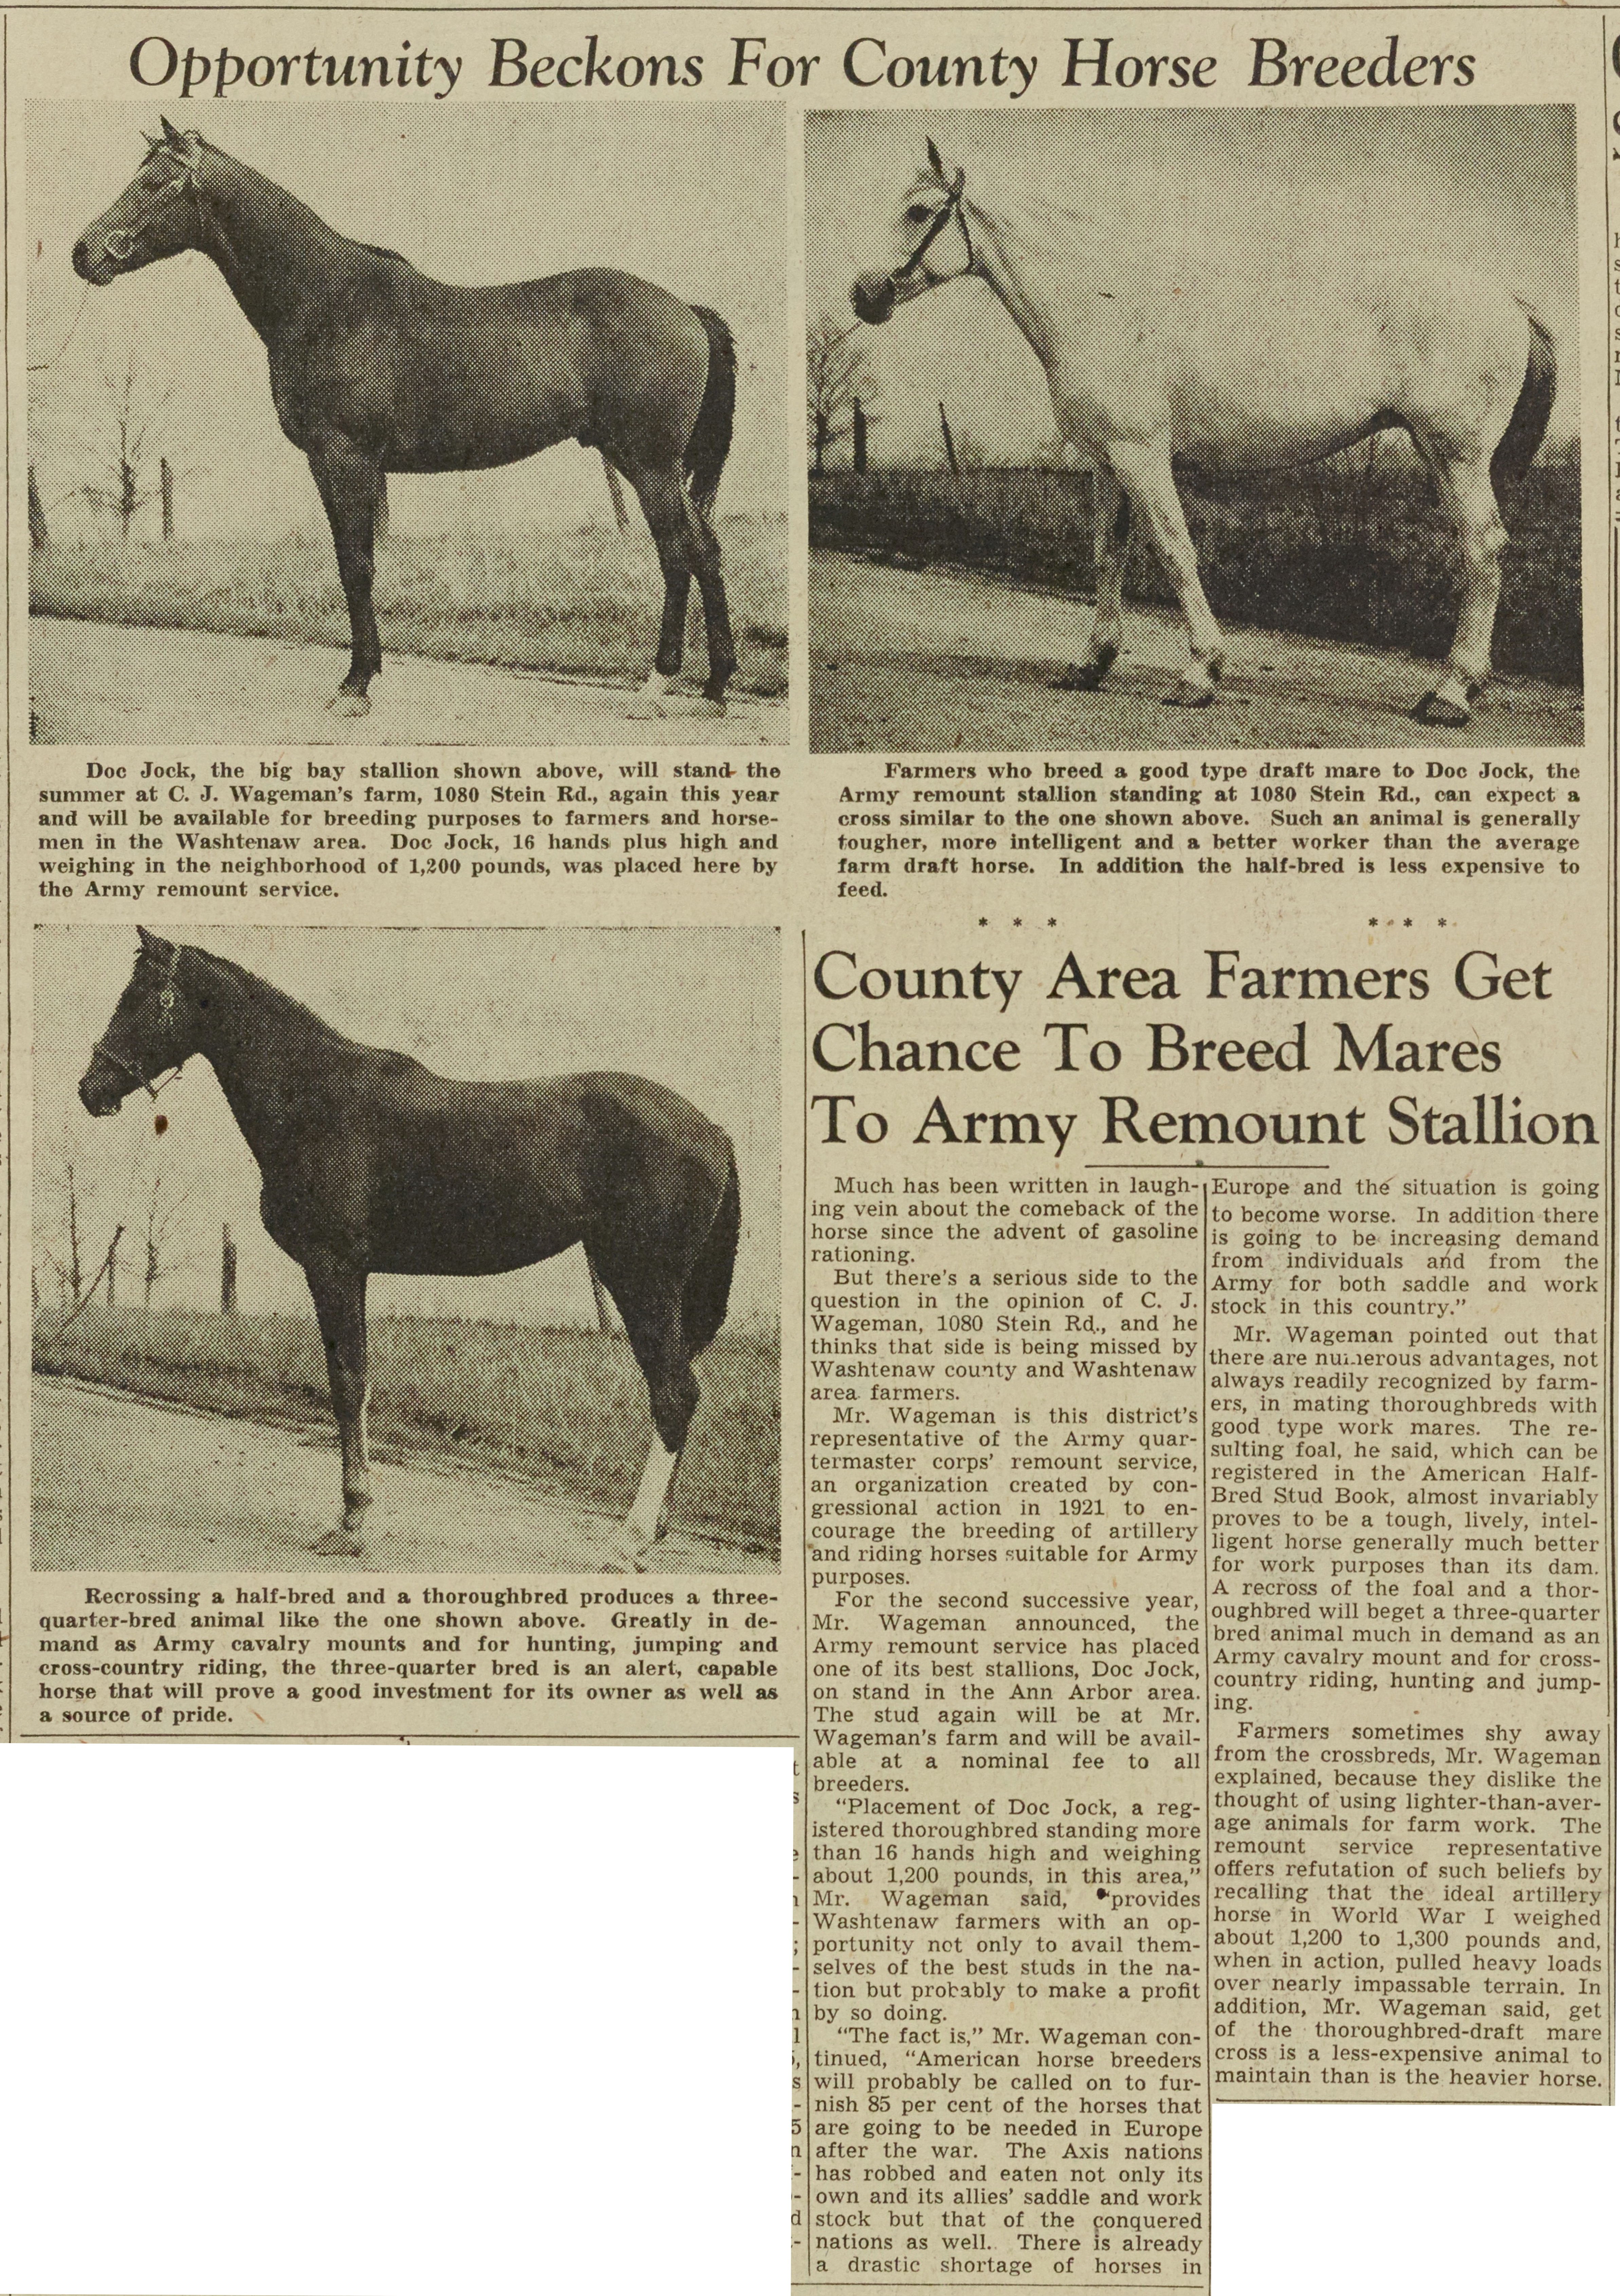 County Area Farmers Get Chance To Breed Mares To Army Remount Stallion image